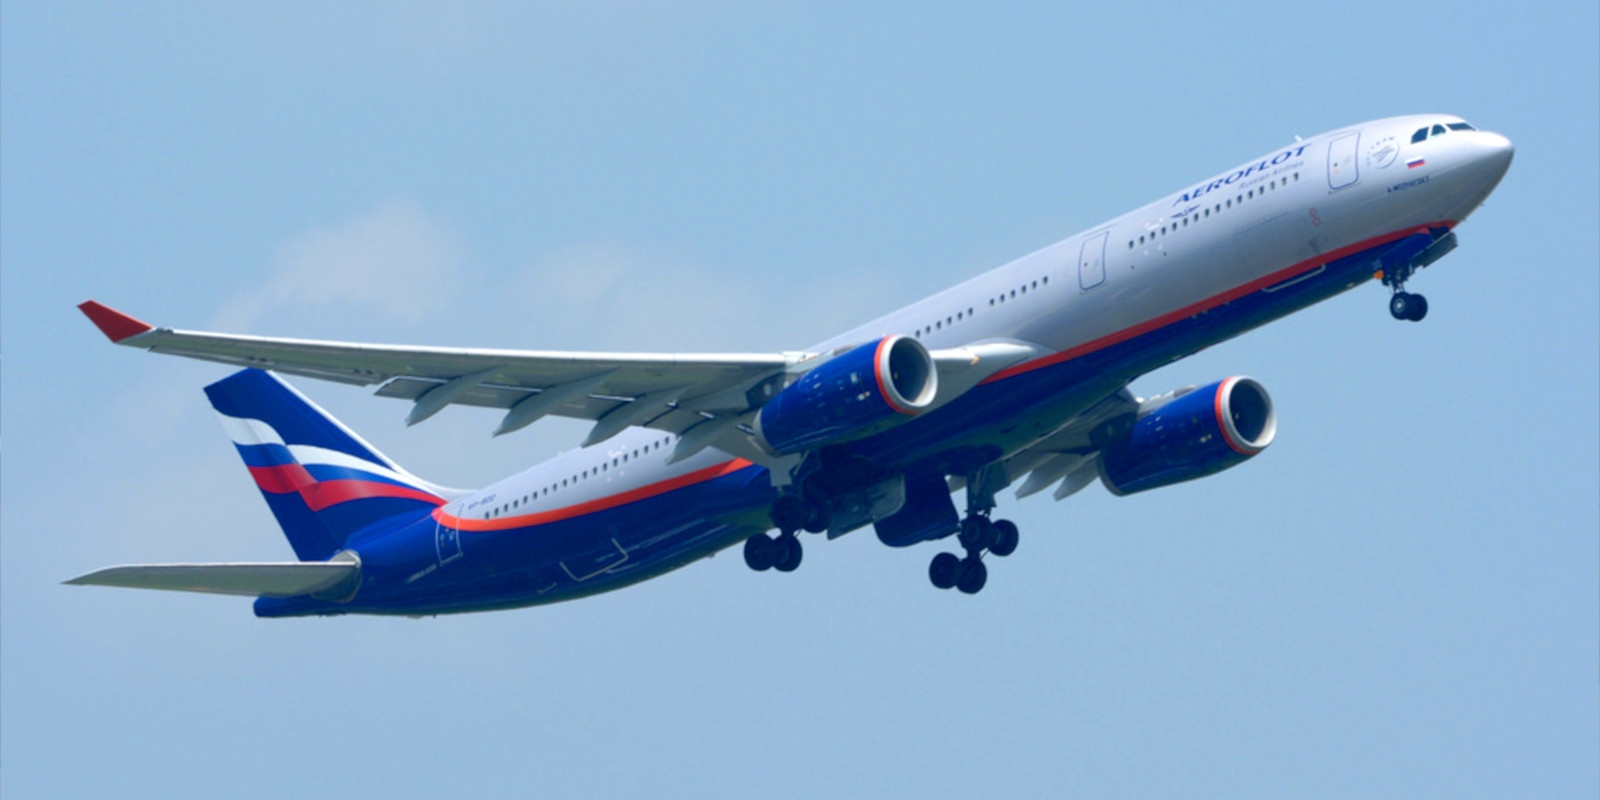 An Aeroflot airliner lifting off into a blue sky.